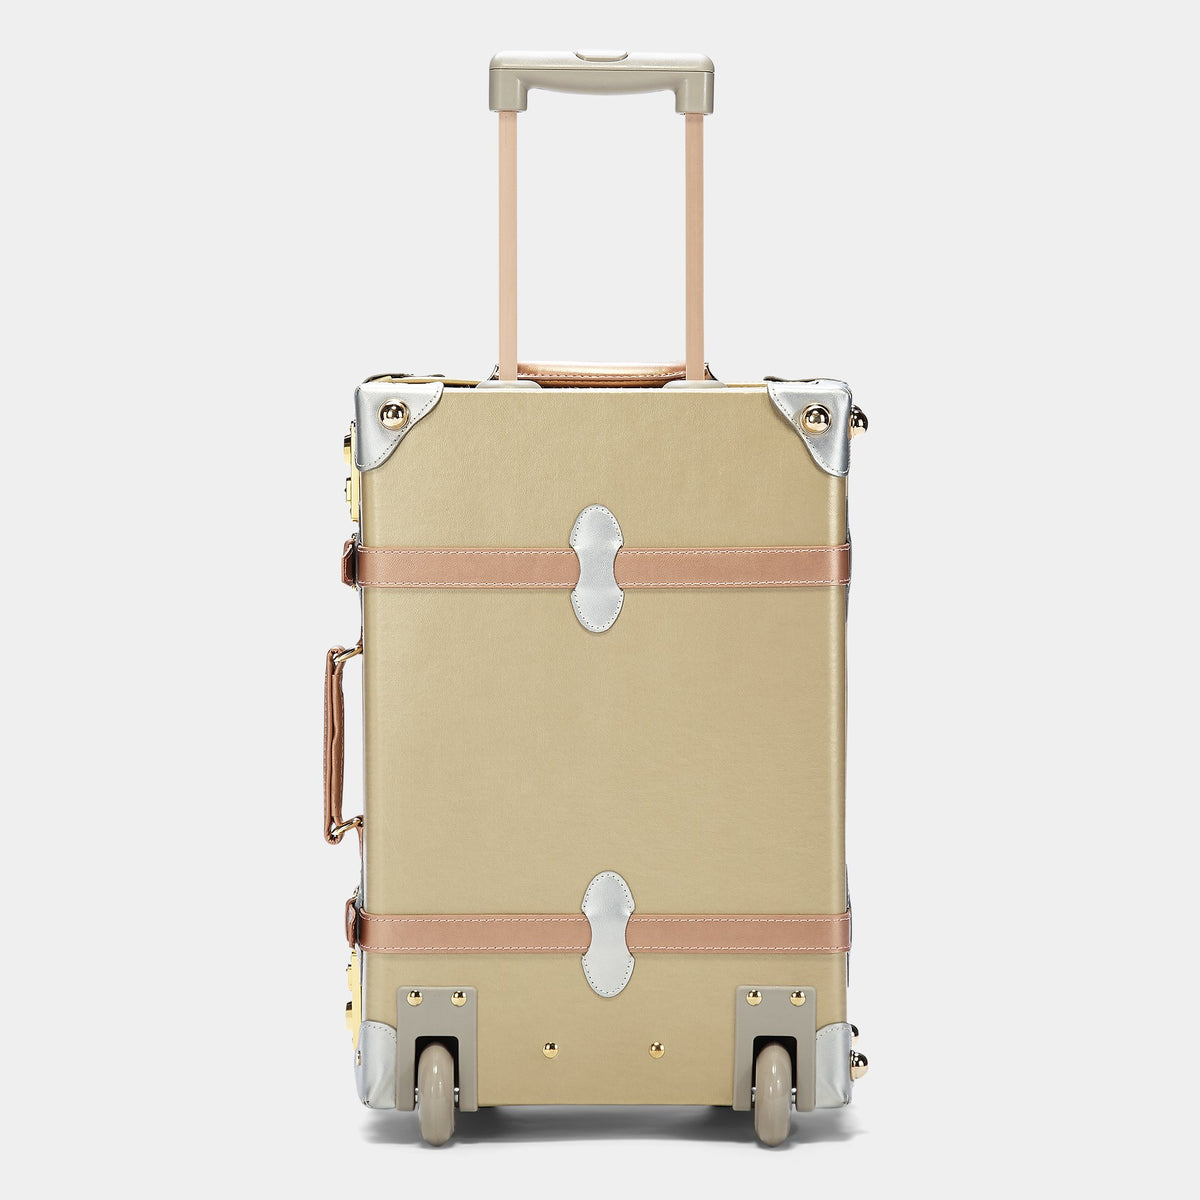 The Alchemist Carryon - Retro-Style Cabin Luggage - Exterior back with extended handle